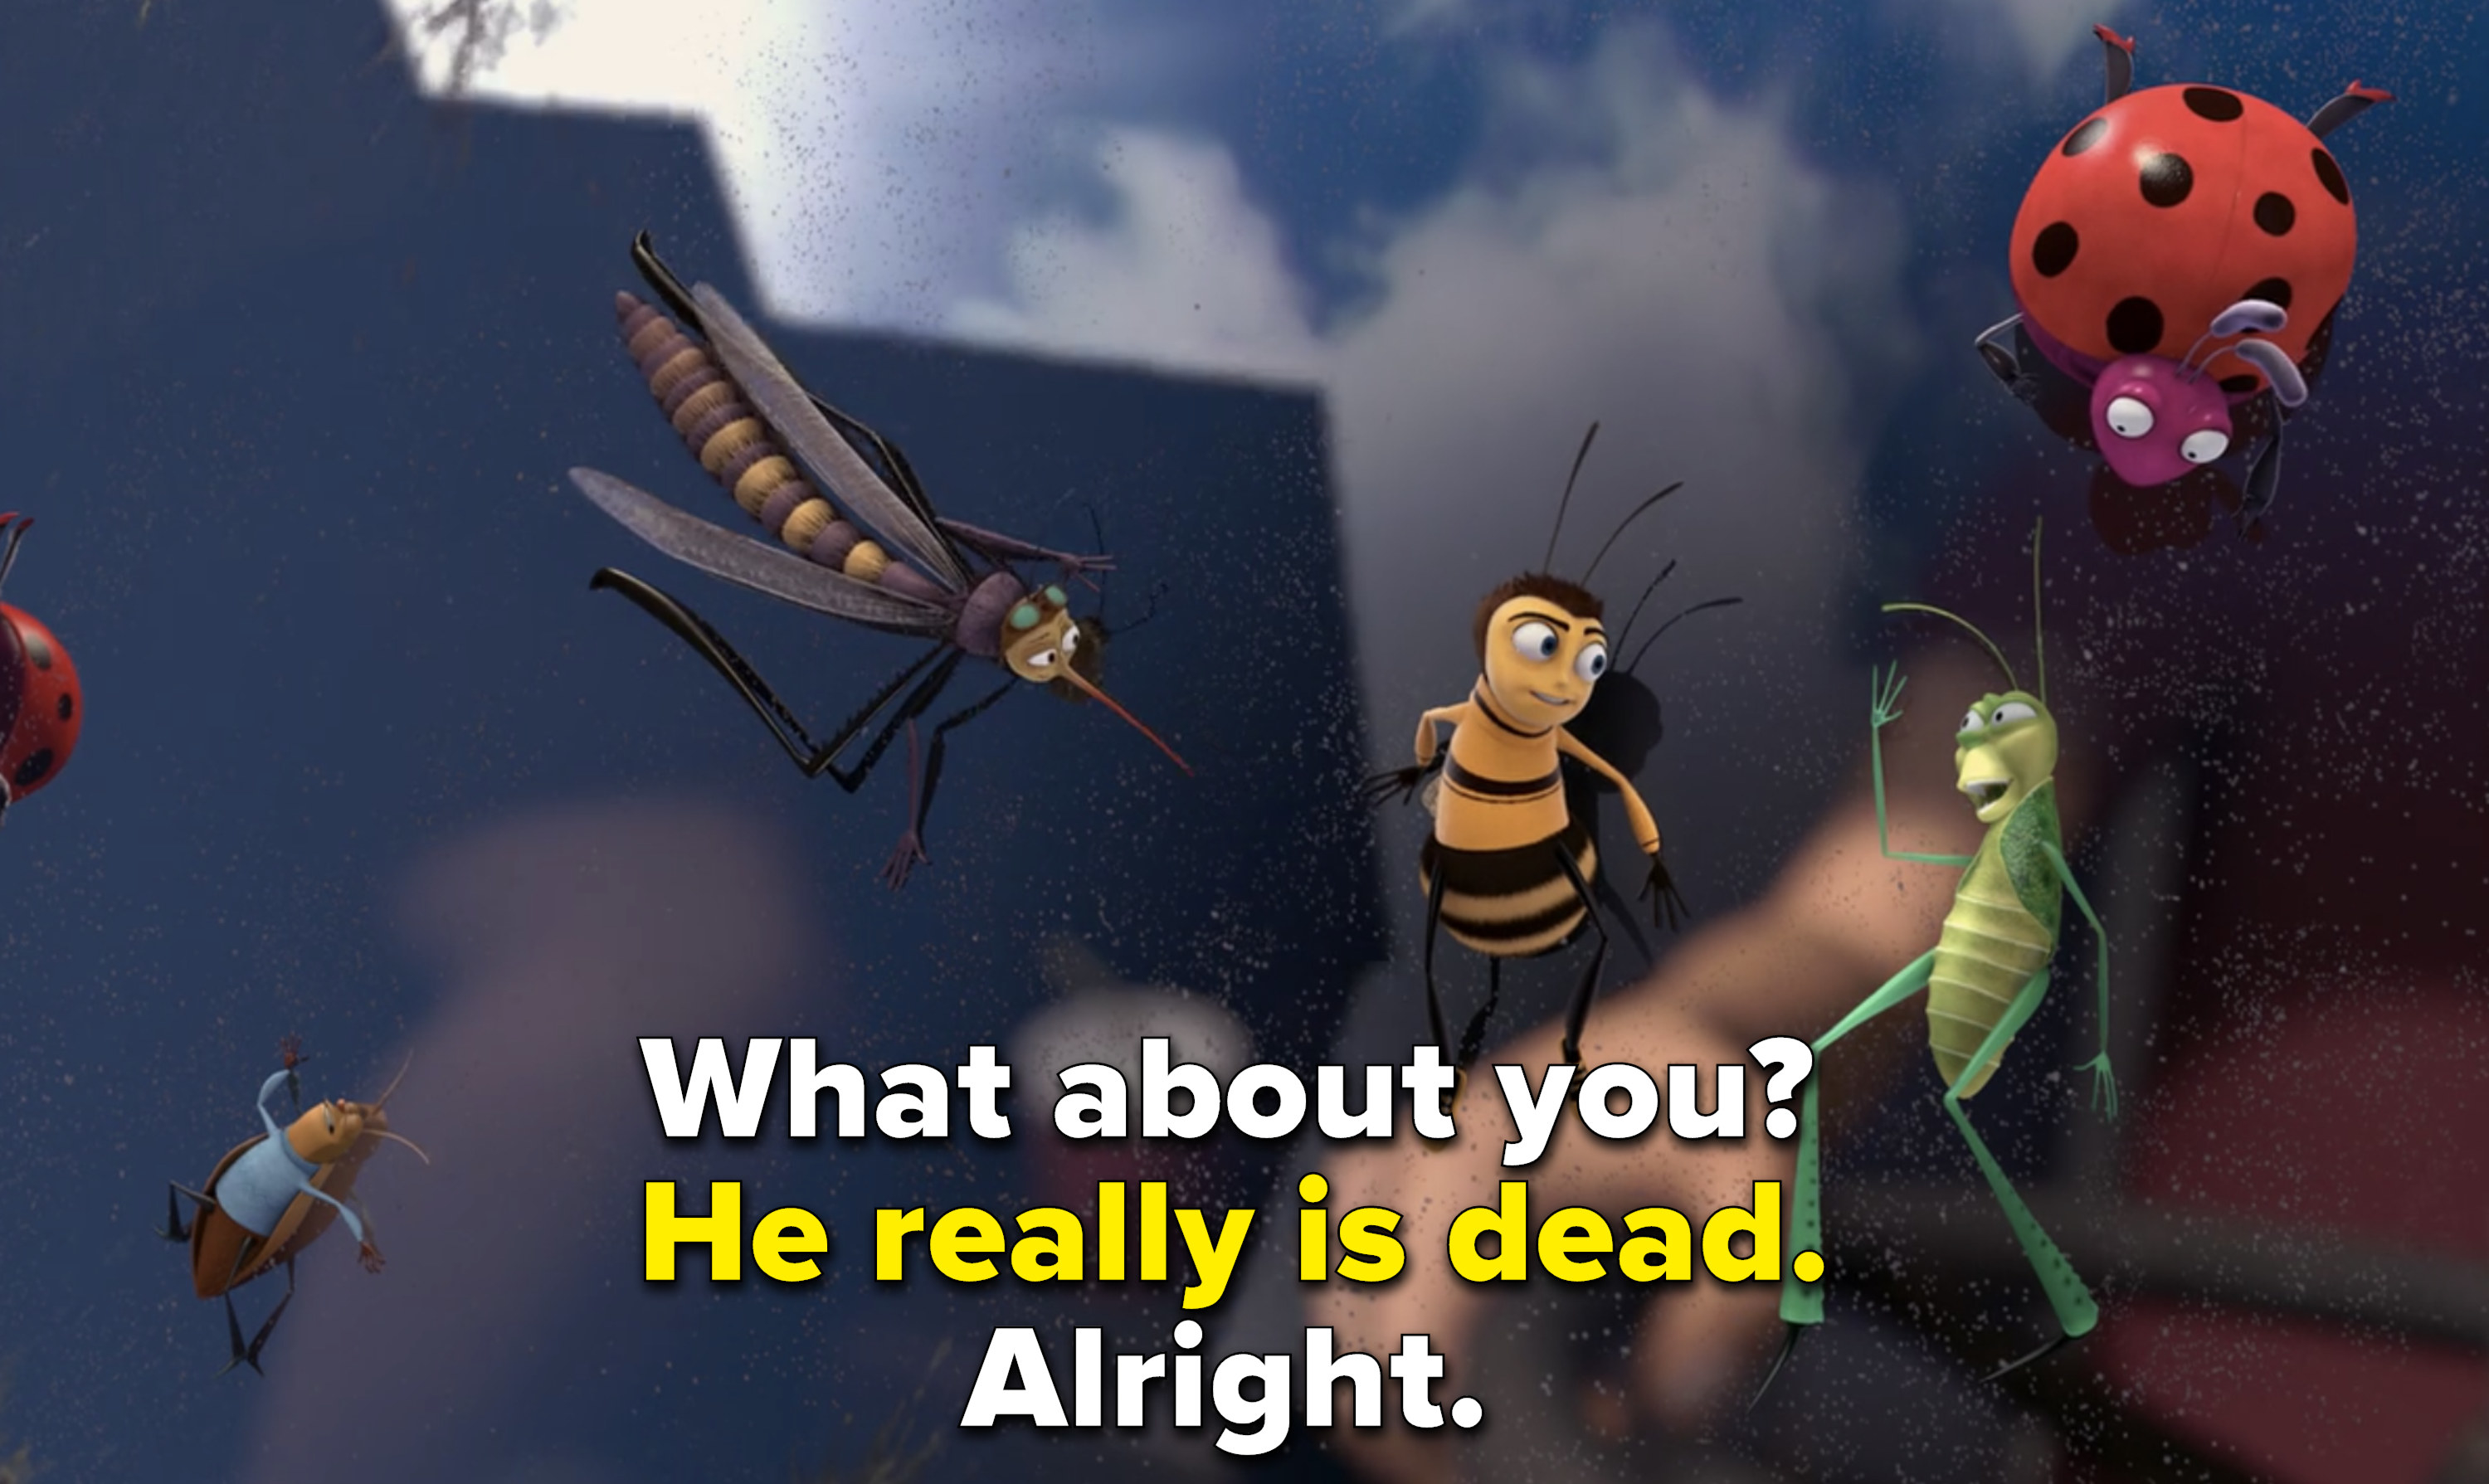 """Barry asks about the bug next to him, but the mosquito says he's dead, and Barry says """"Alright"""""""